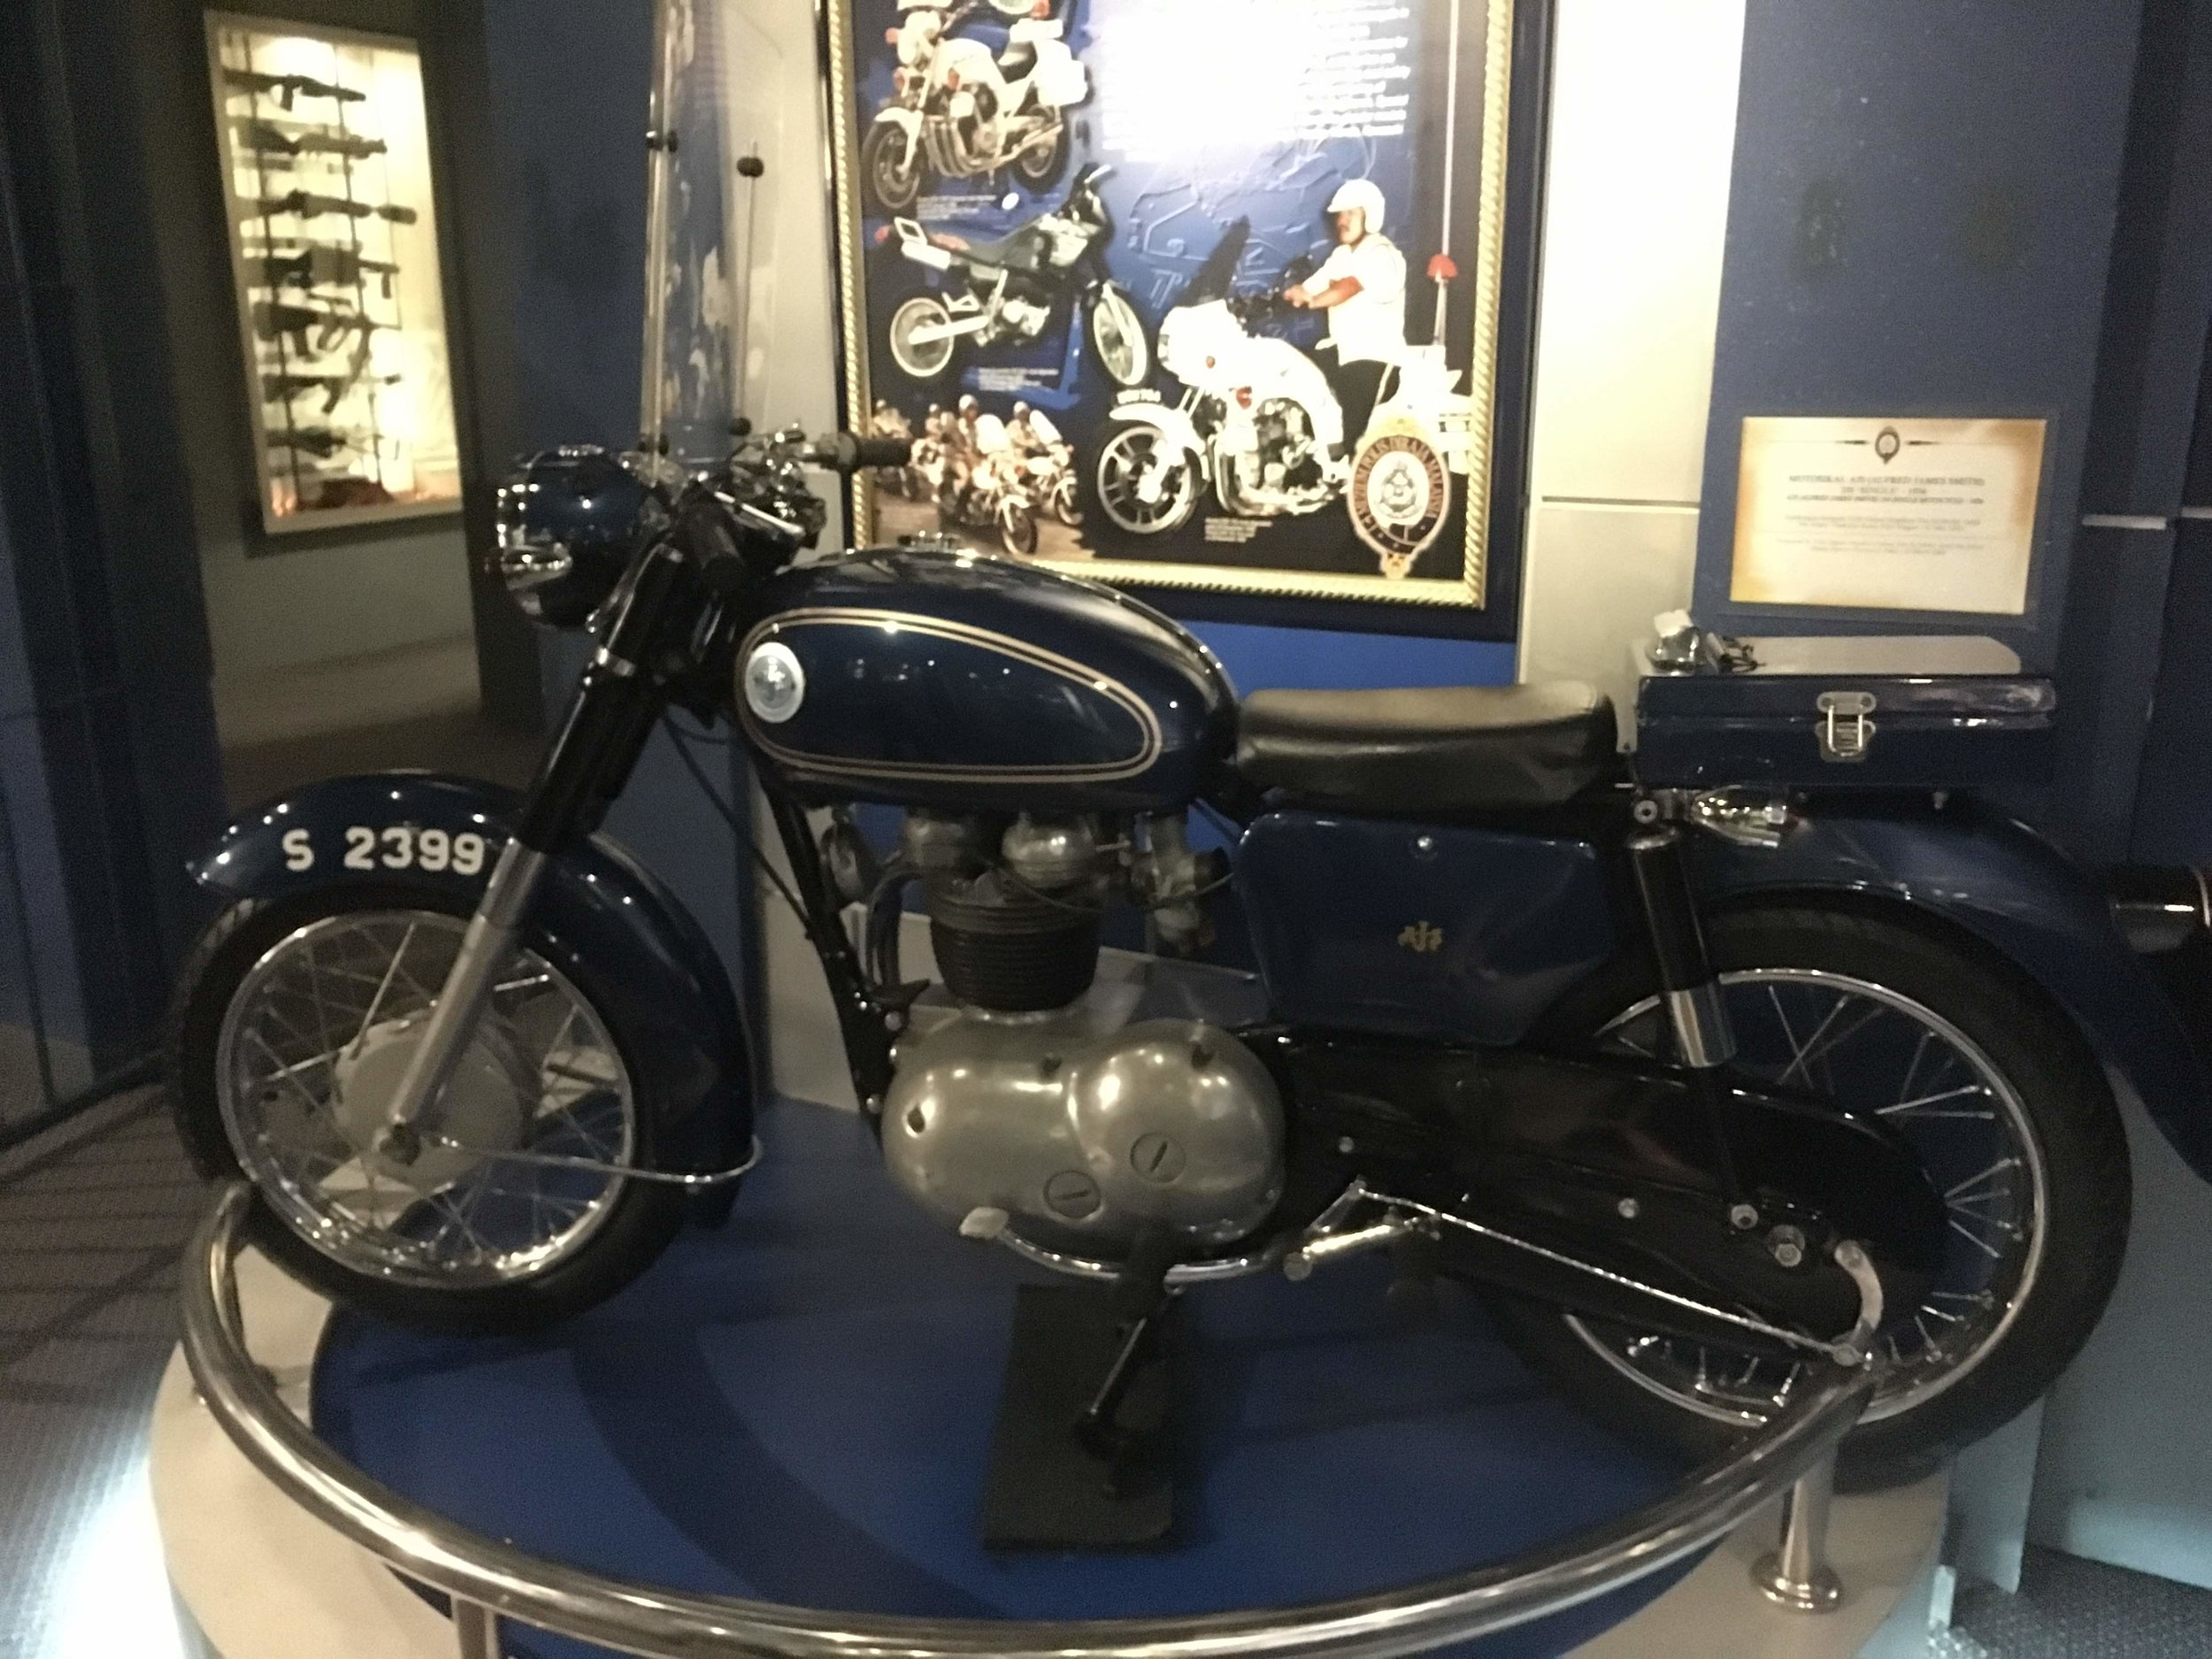 historical motorbike for the Malaysian Police